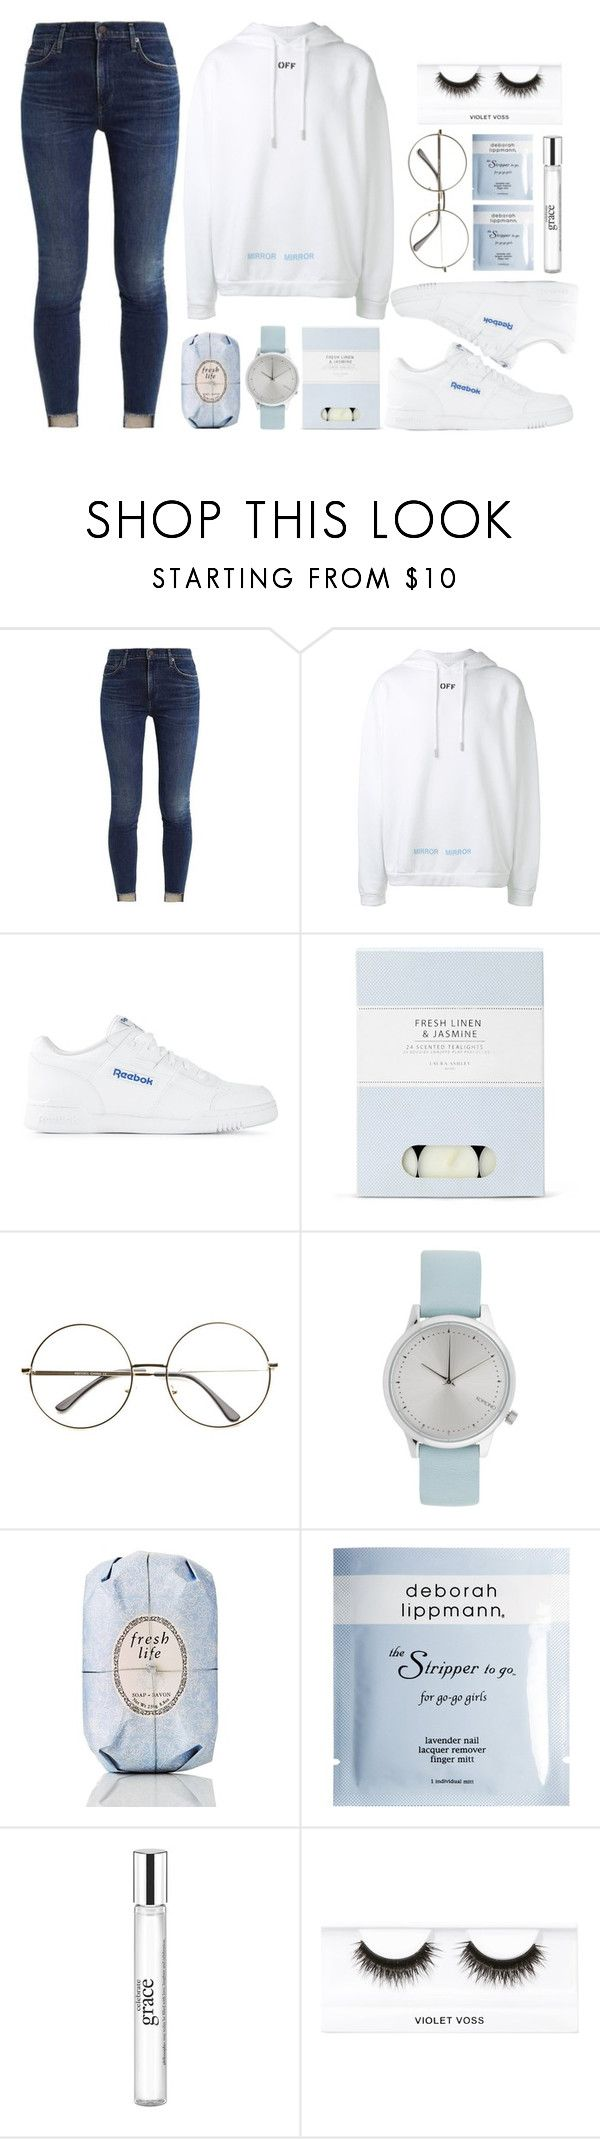 """Believer"" by antisocial-vagabond ❤ liked on Polyvore featuring Off-White, Reebok, Laura Ashley, Komono, Fresh, Deborah Lippmann, philosophy and Violet Voss"